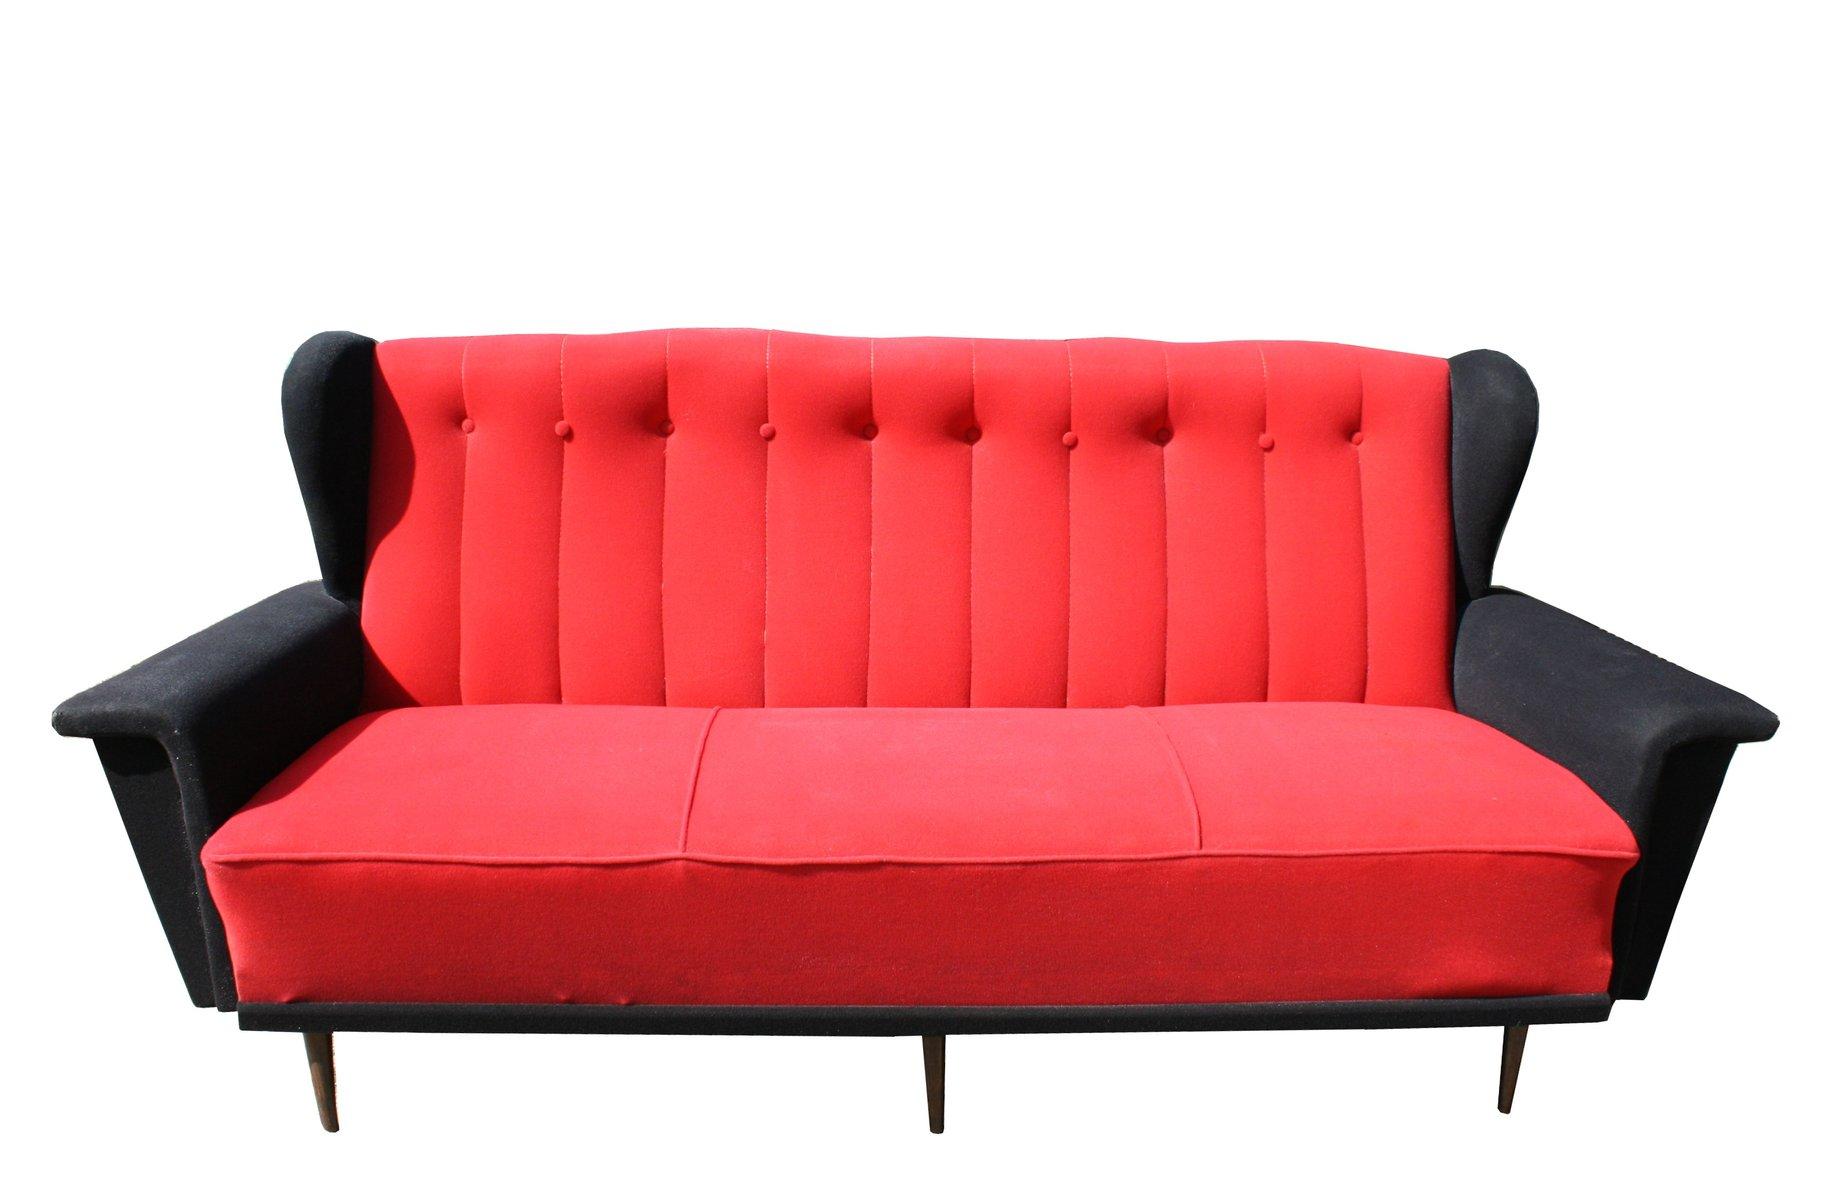 Red And Black Sofas Red And Black Sofa 75 With Jinanhongyu  : vintage red black sofa 1950s 1 from thesofa.droogkast.com size 1837 x 1200 jpeg 87kB